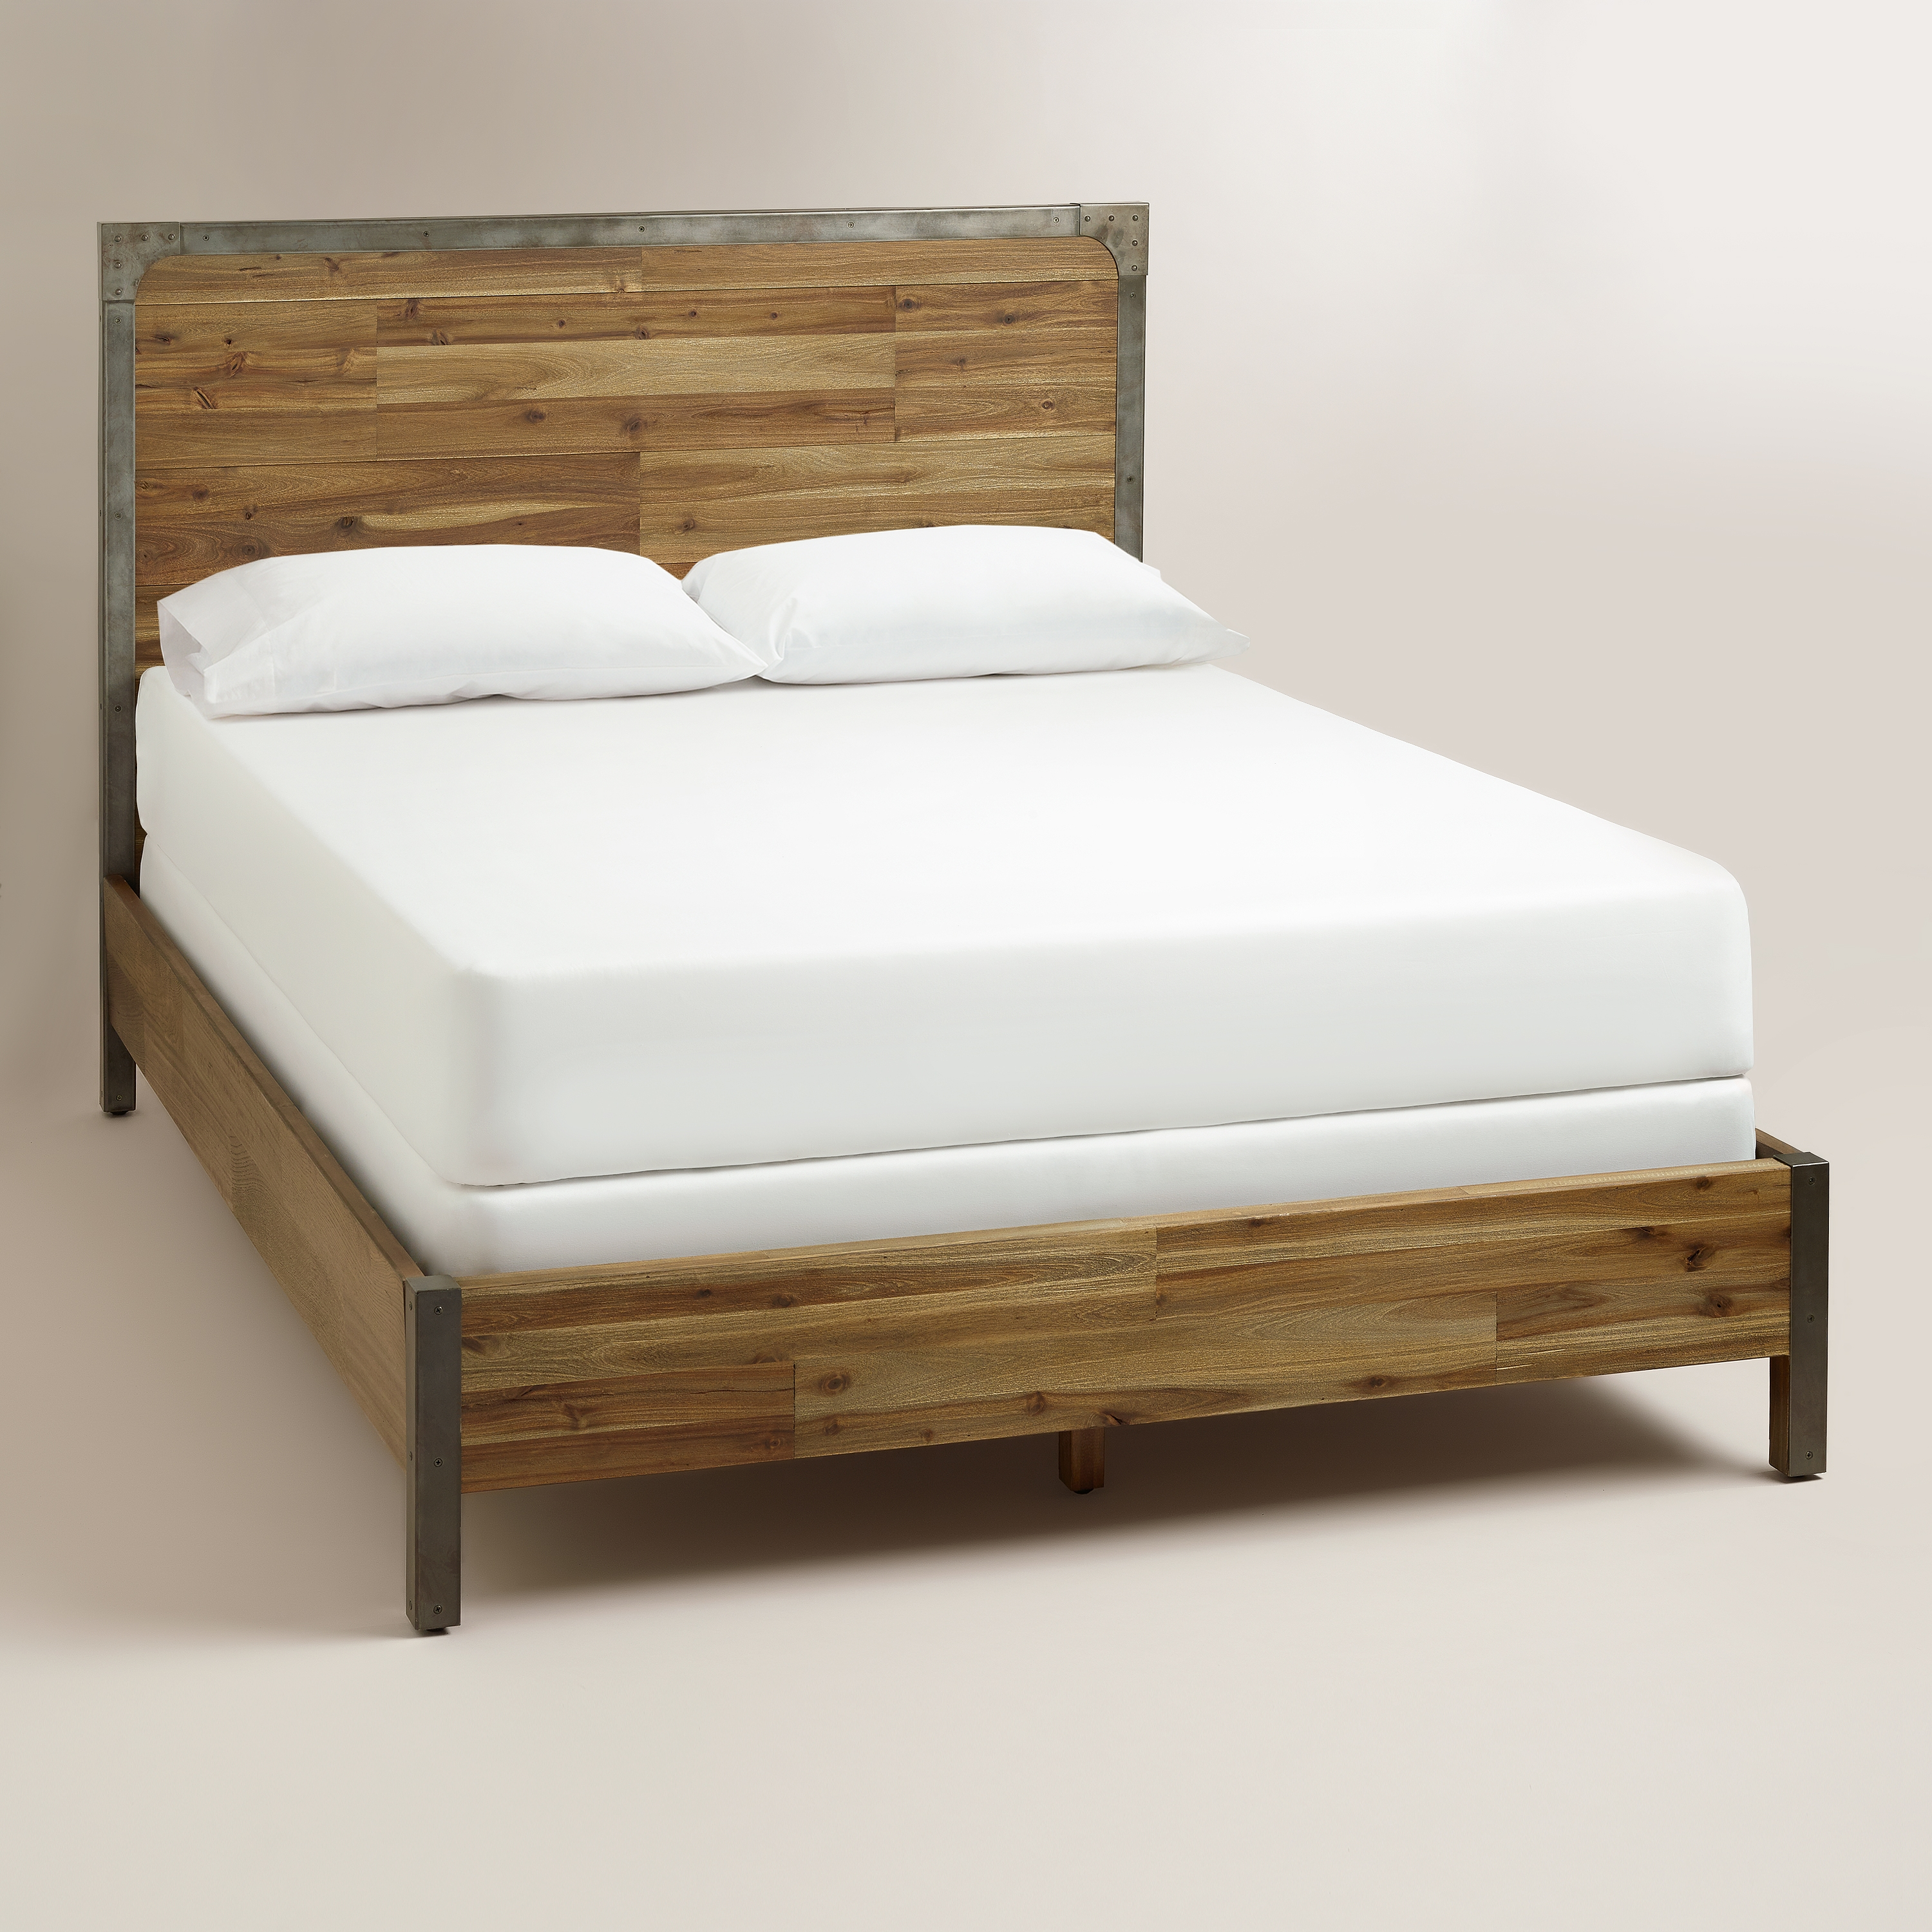 Permalink to Iron And Wood Bed Frames